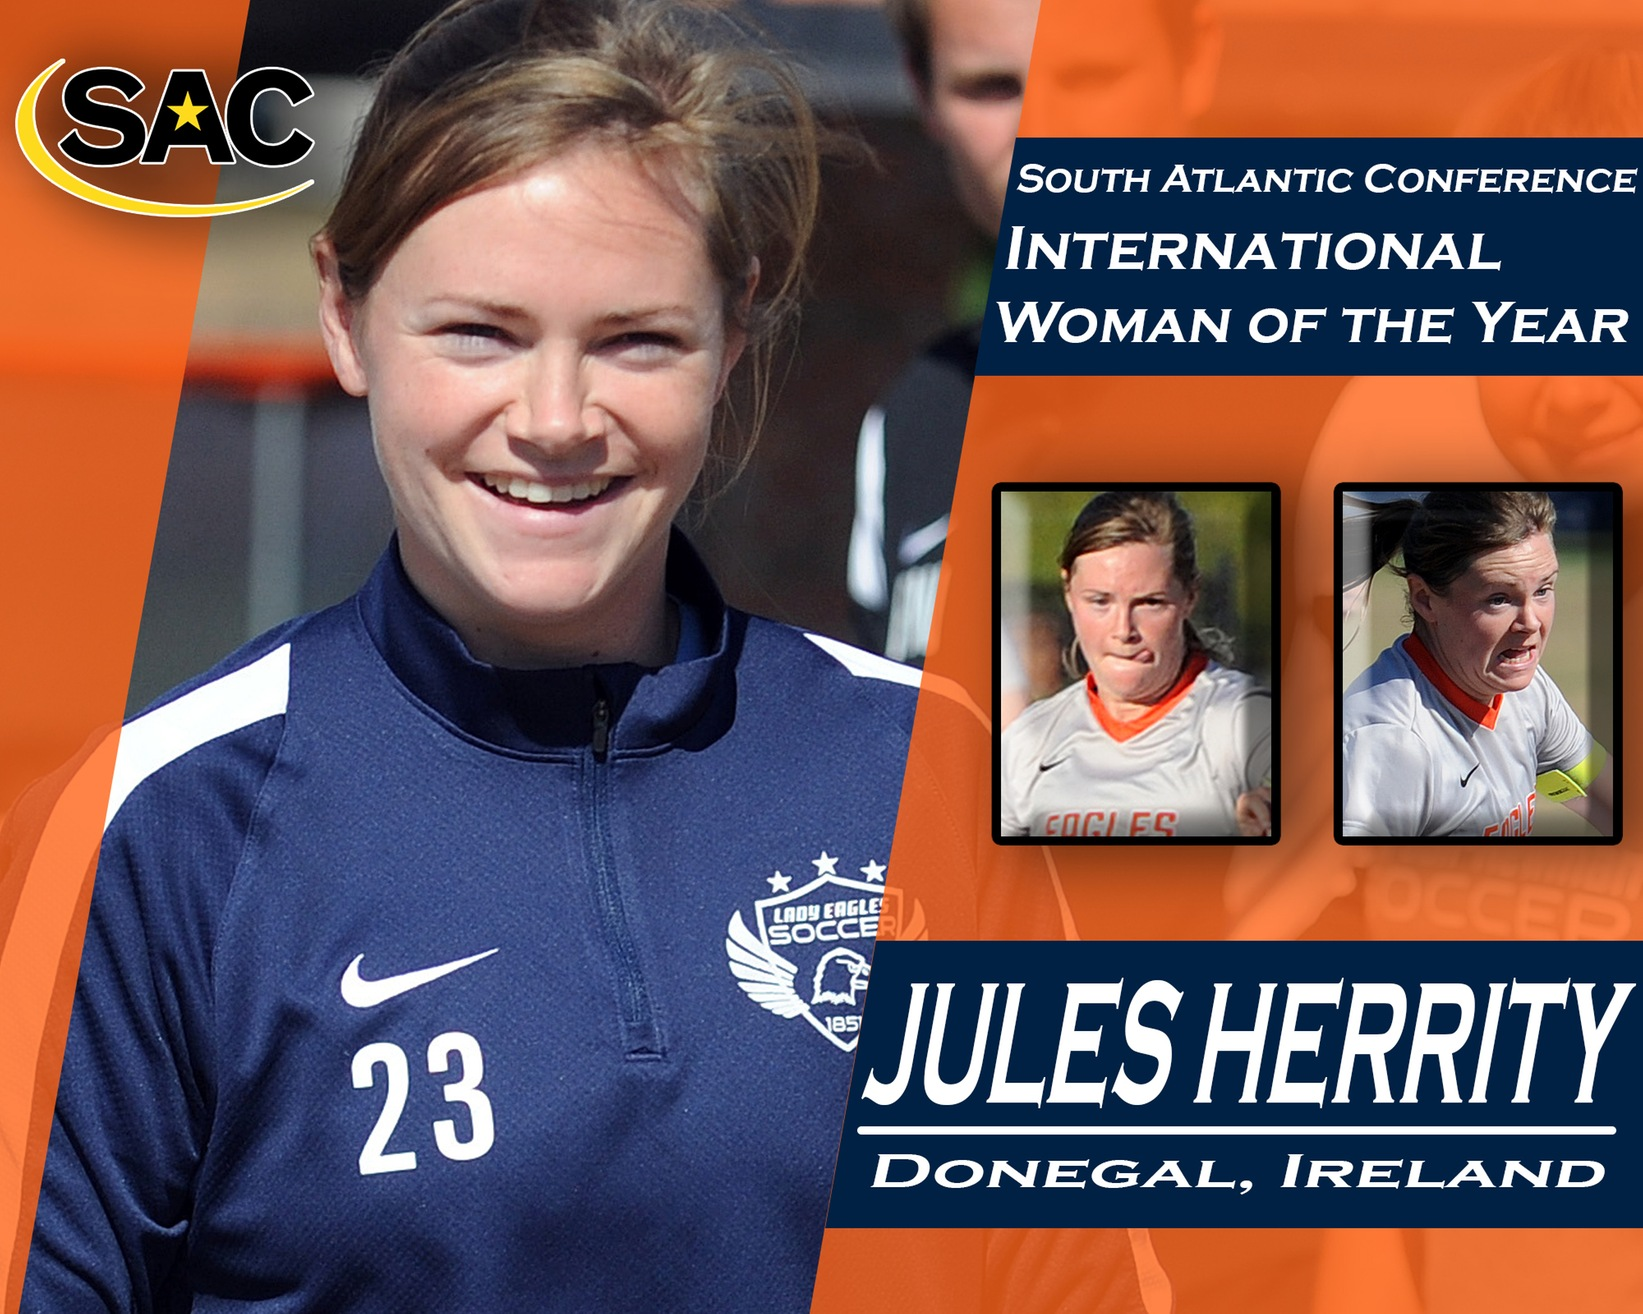 Herrity named International South Atlantic Conference Woman of the Year